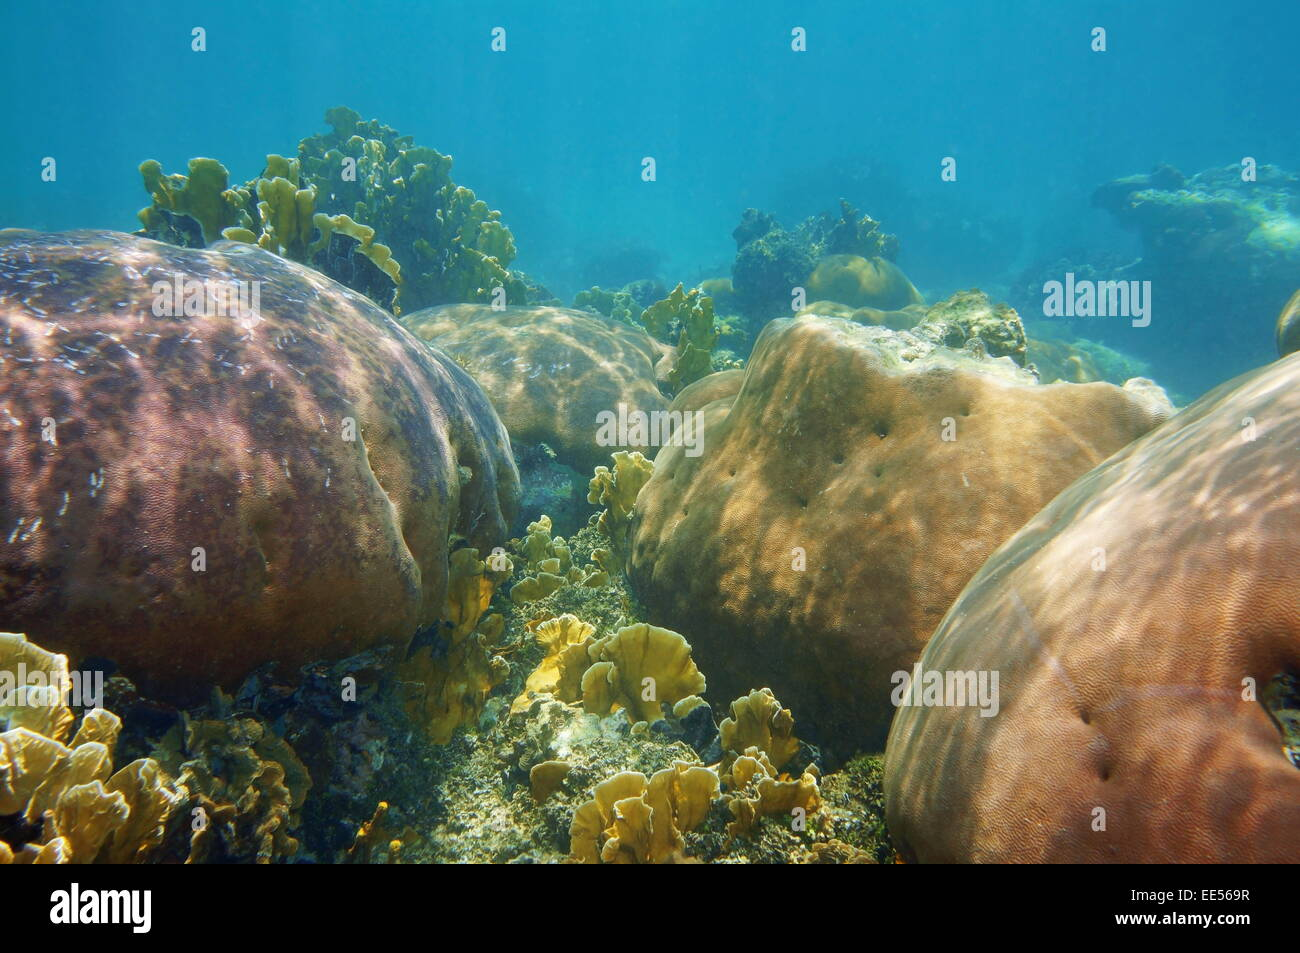 Underwater landscape in a stony coral reef of the Caribbean sea - Stock Image